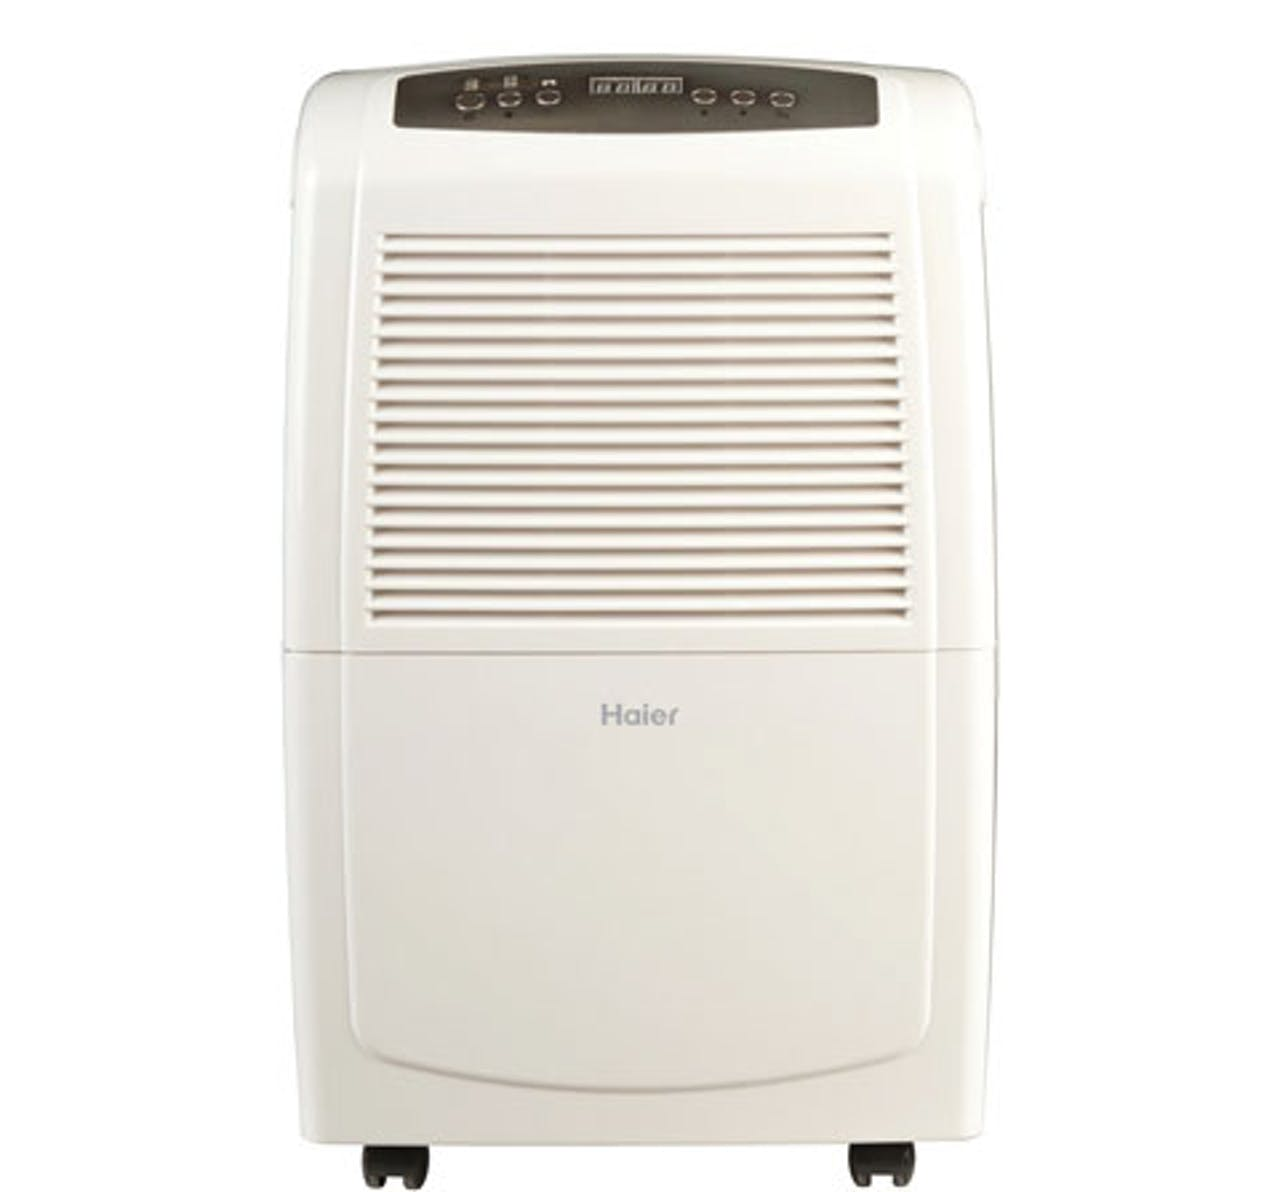 Picture of a Haier dehumidifier